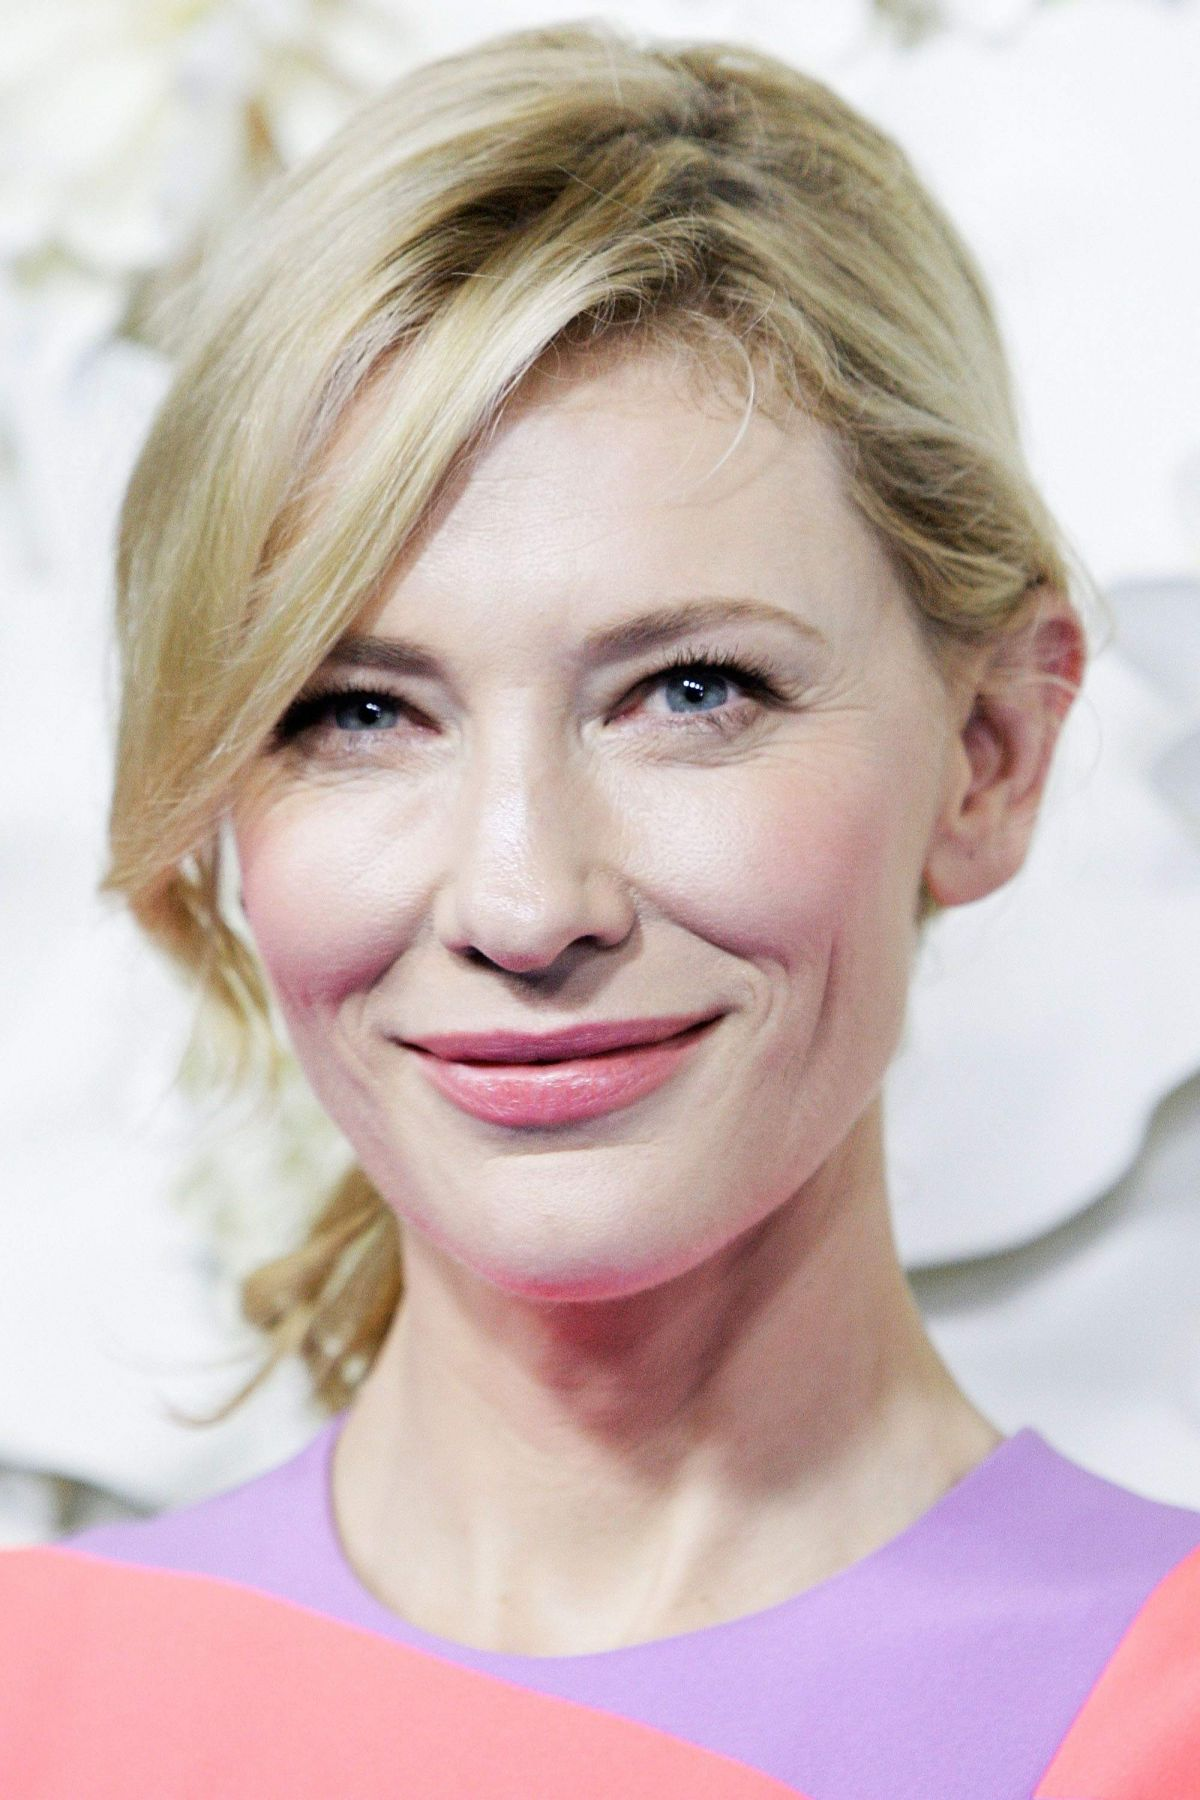 Cate Blanchett Archives - Page 7 of 11 - HawtCelebs ... Cate Blanchett